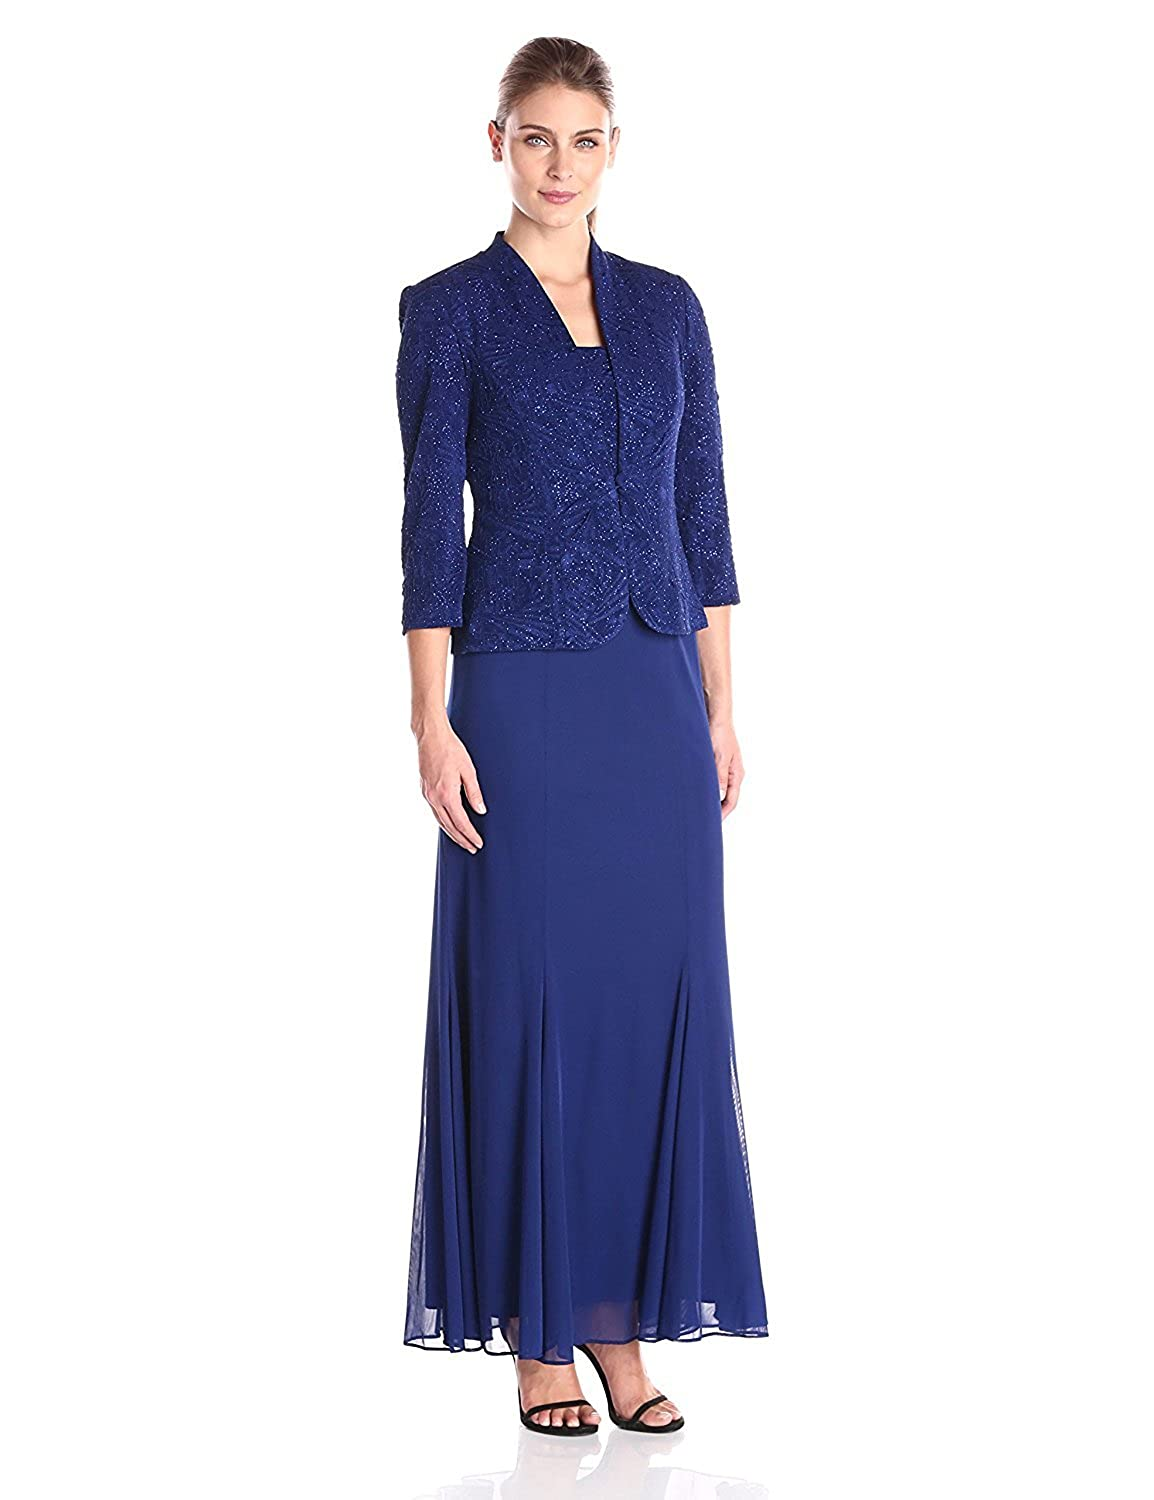 Alex Evenings Women's Long Jacket Gown with Chiffon Skirt Electric Blue 12 [並行輸入品] B075CHXV5T